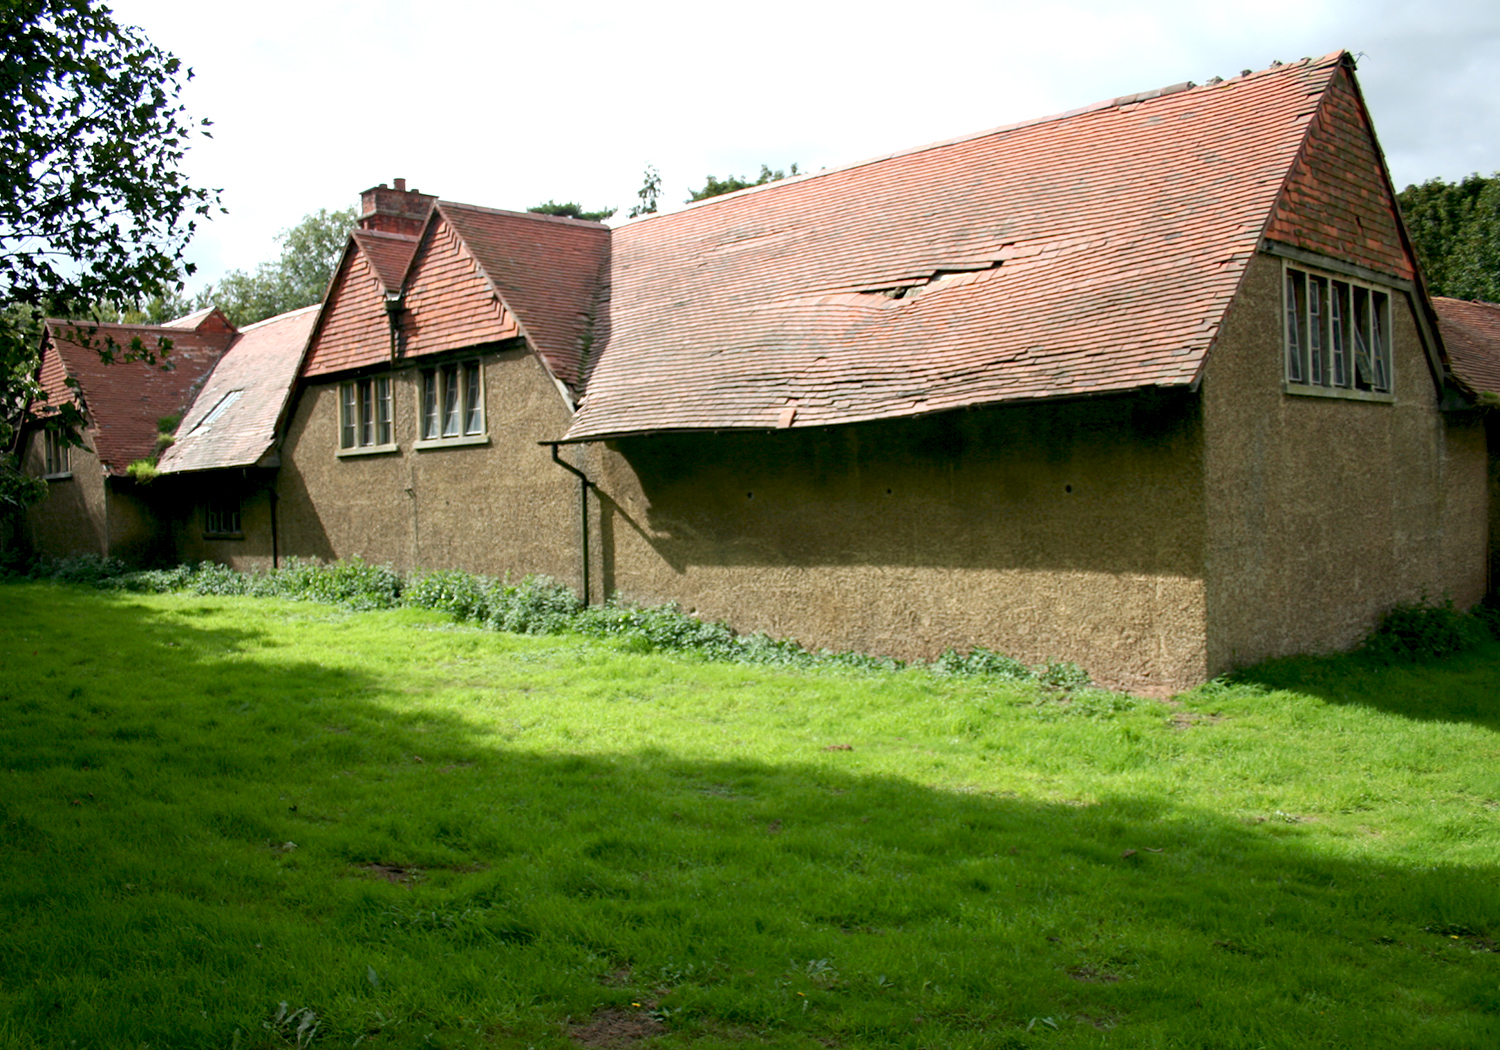 Projects-Residential-OldStablesBawdsey-Barn-2-1500x1050